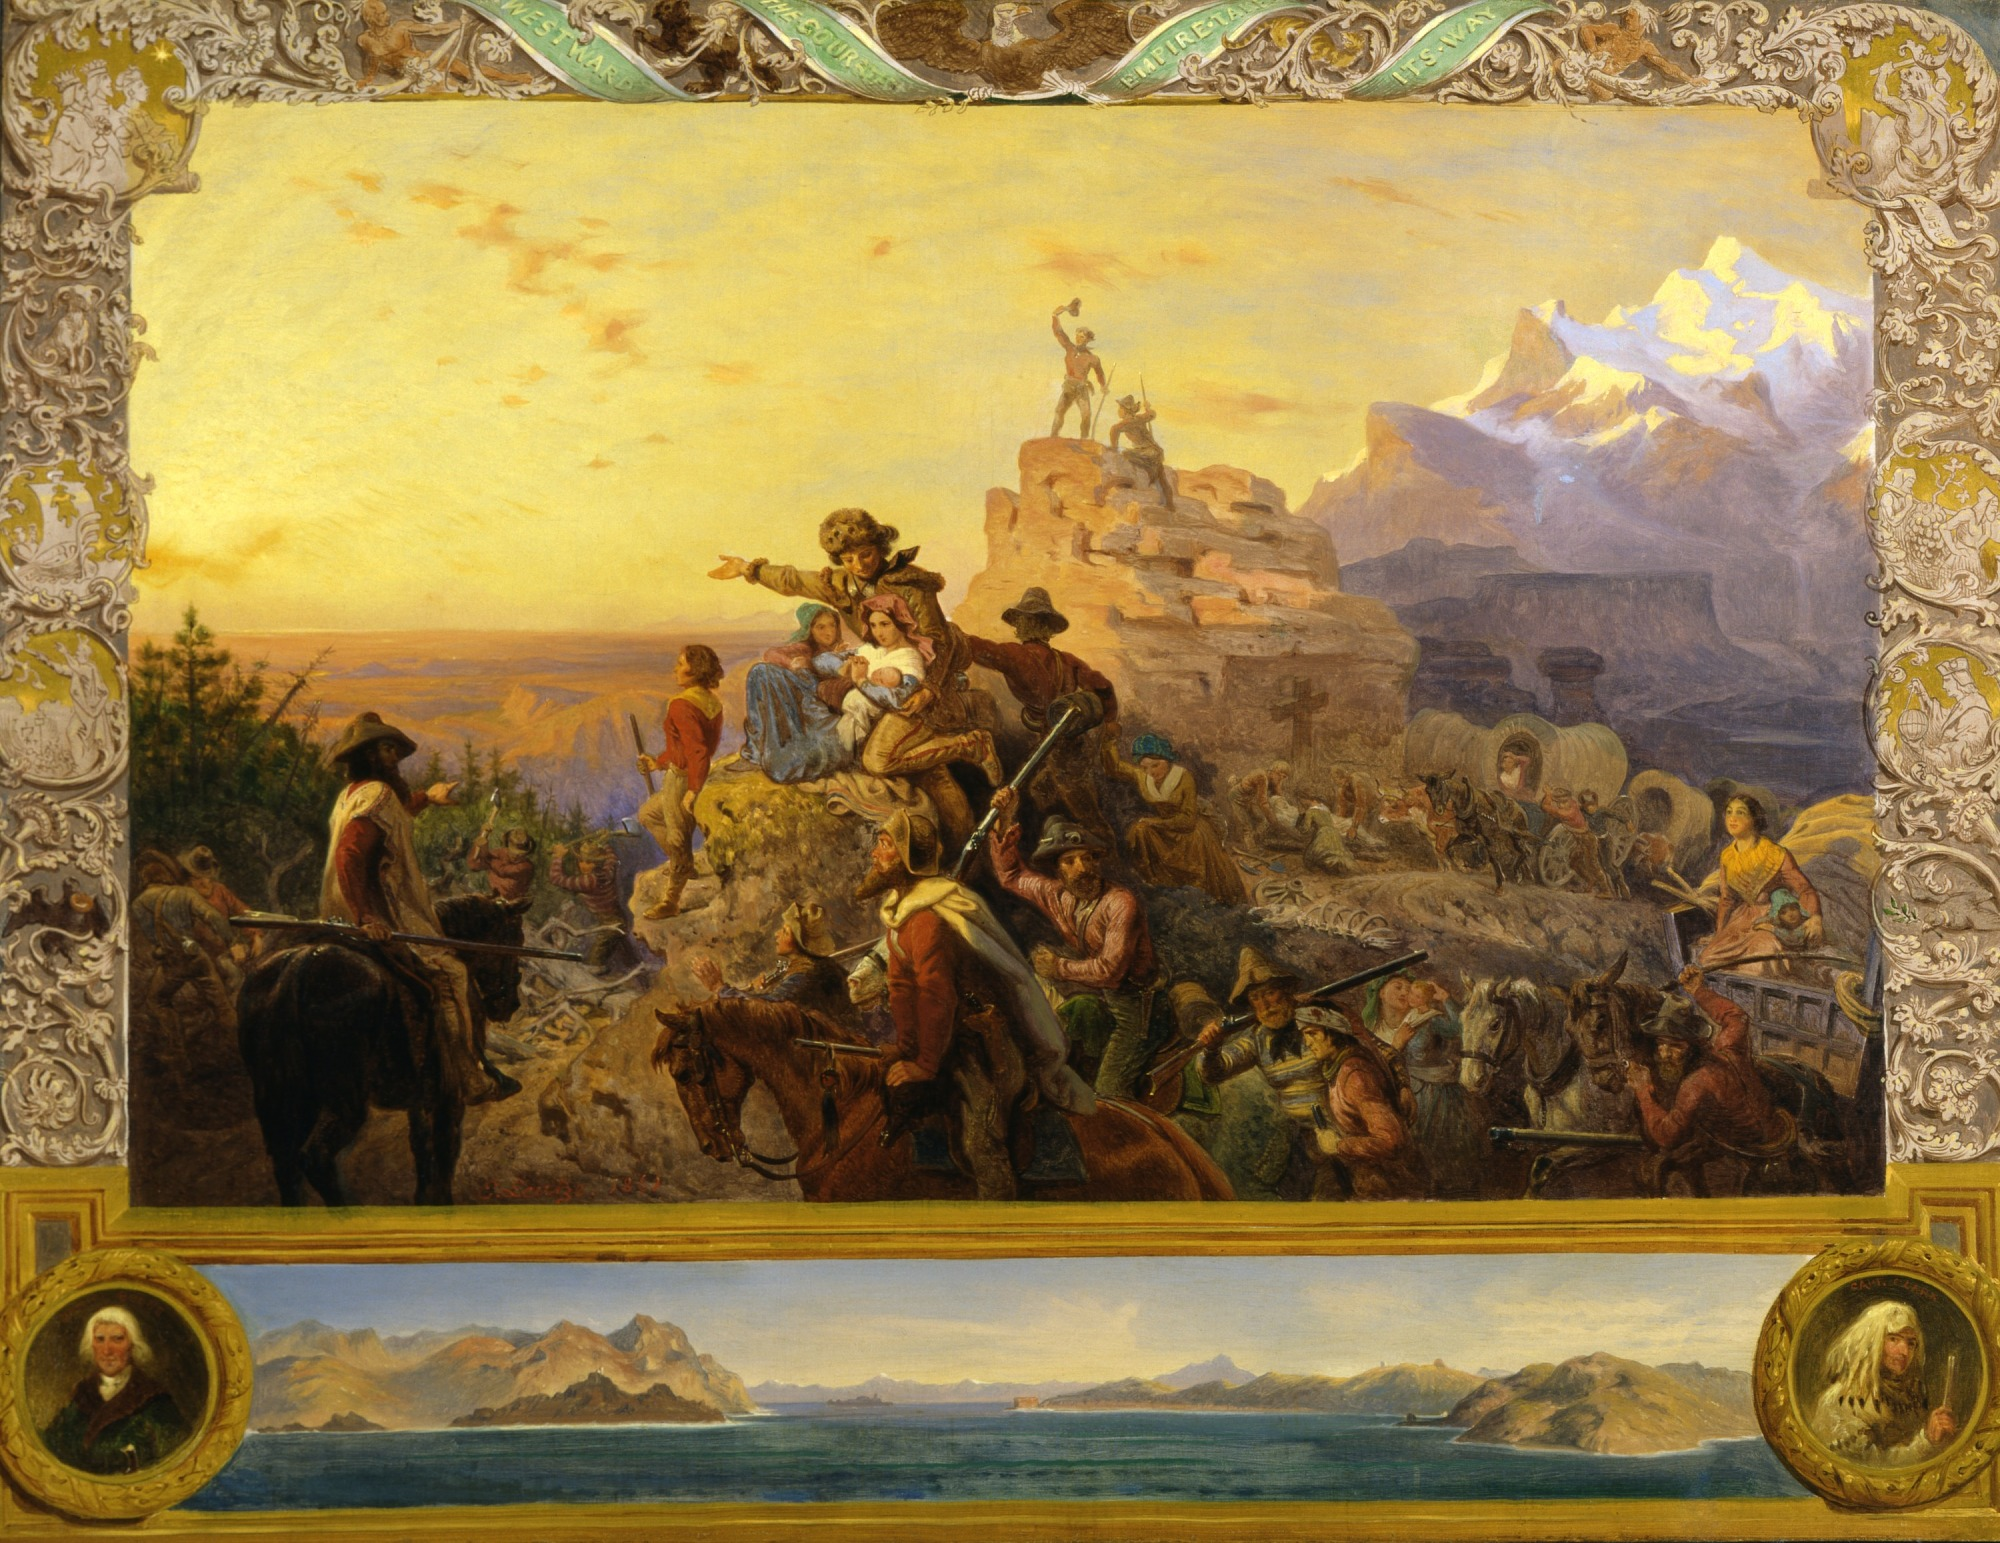 Westward the Course of Empire Takes Its Way (mural study, U.S. Capitol)